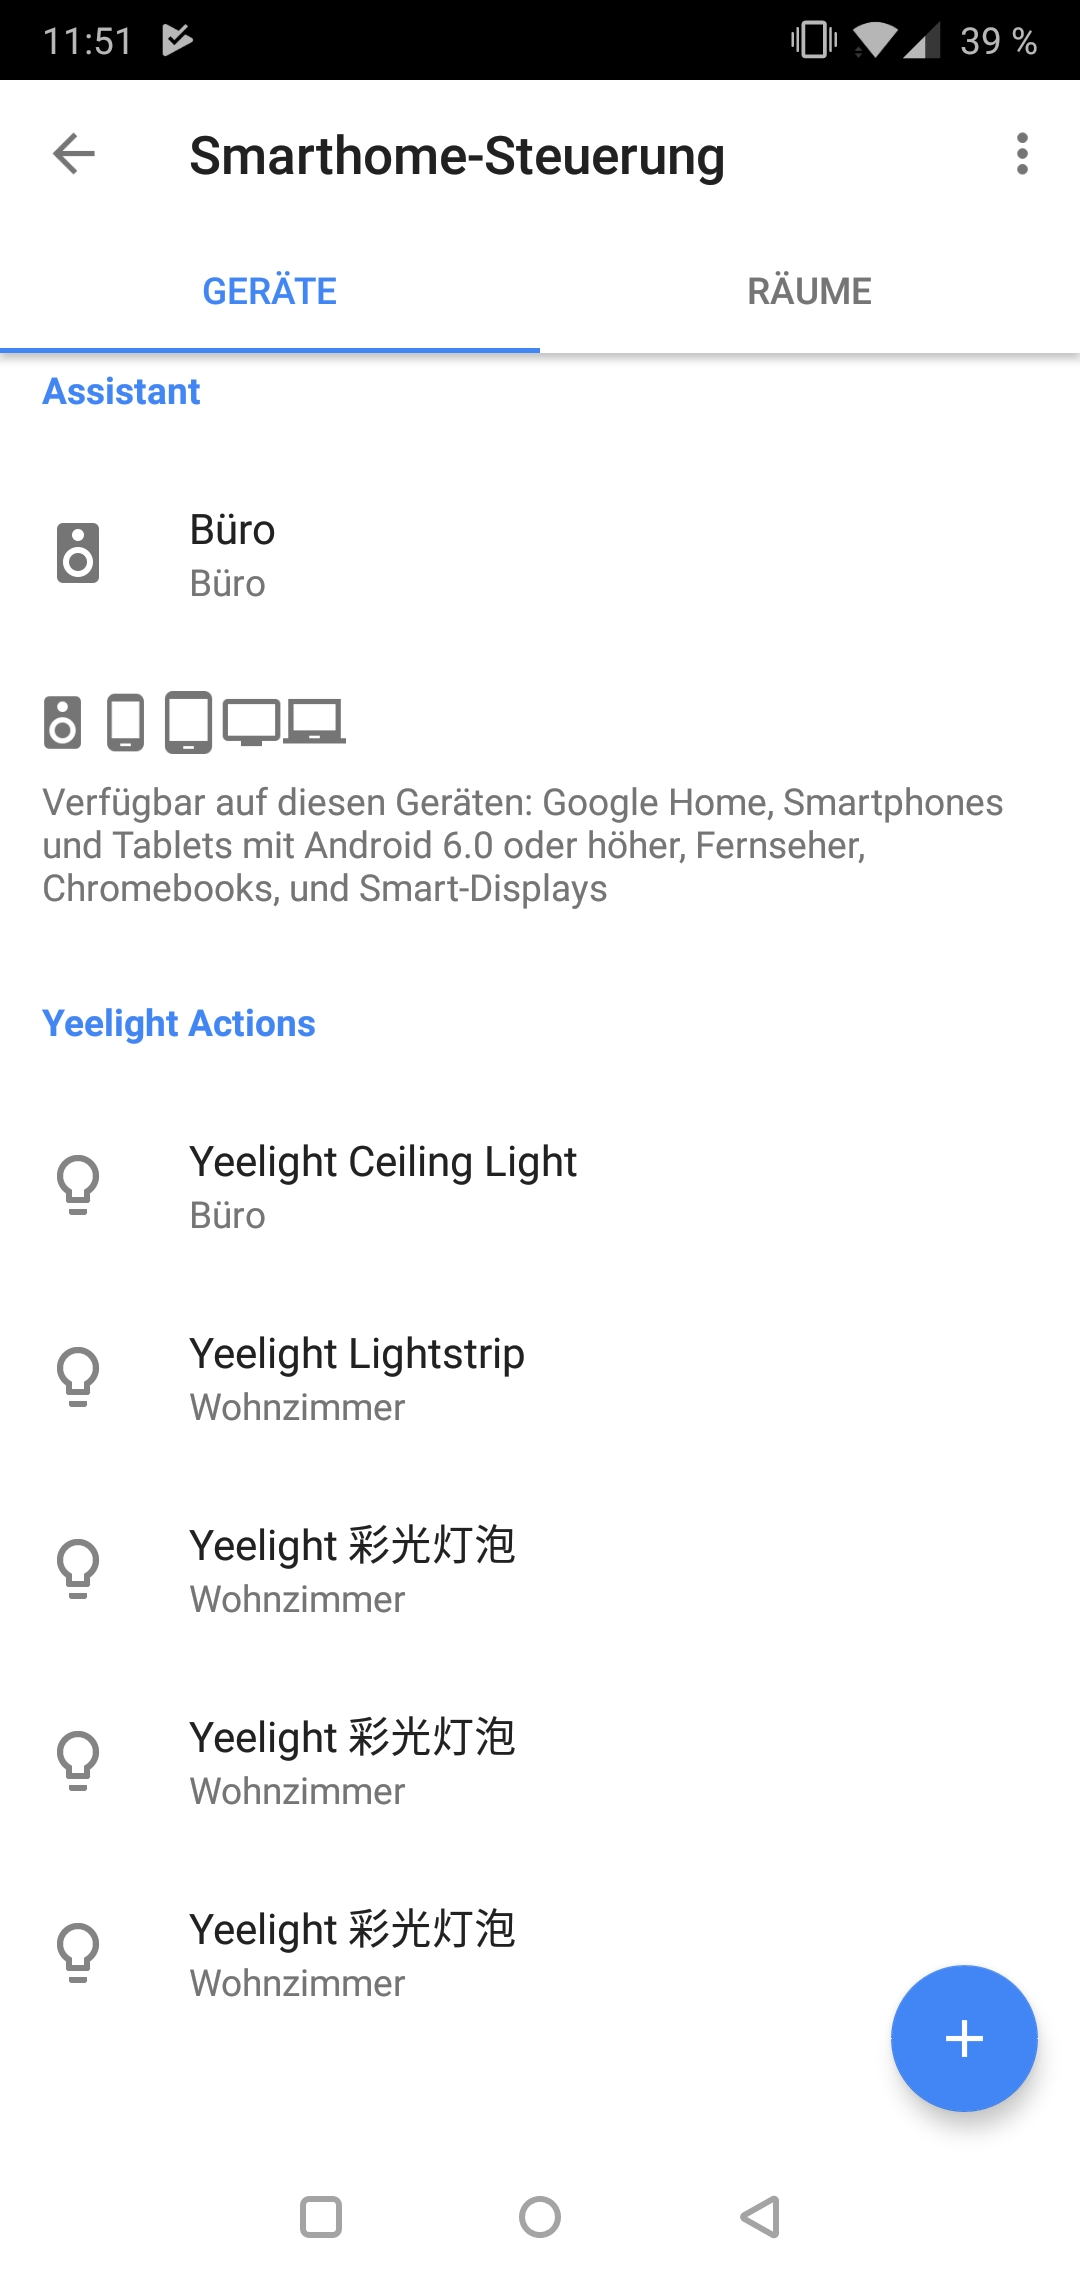 Yeelight 2nd Generation Smart Bulb Glühbirne Testbericht Screenshot Yeelight App Google Smart Home 10